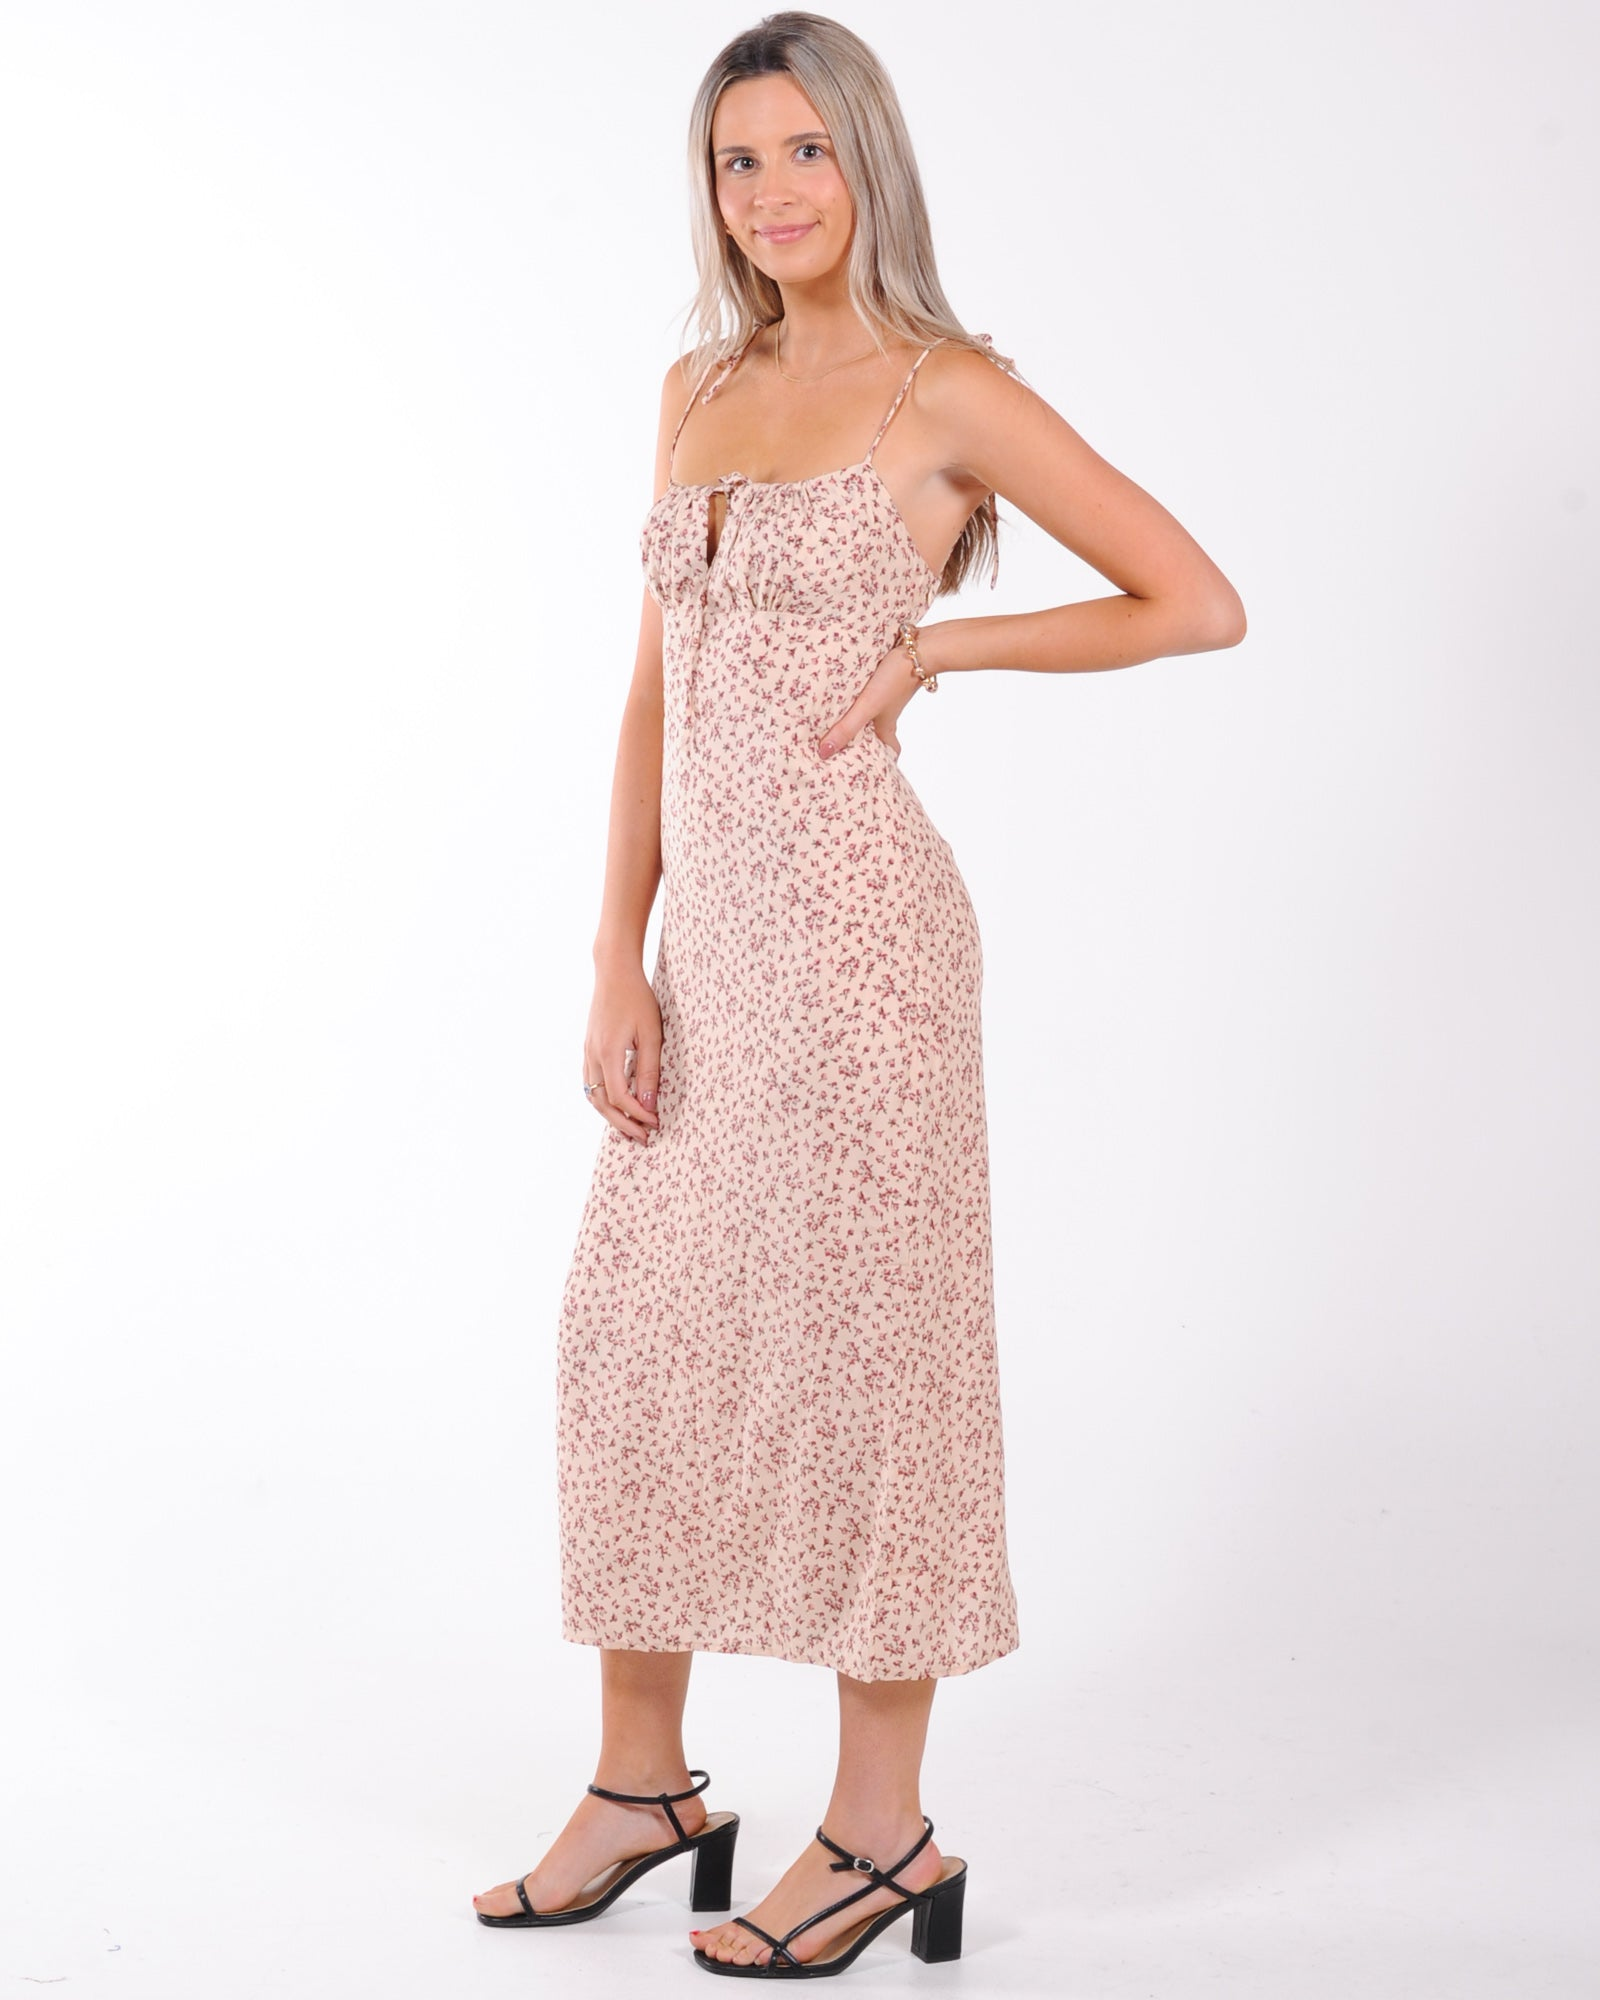 Summer Days Floral Midi Dress - Beige Floral